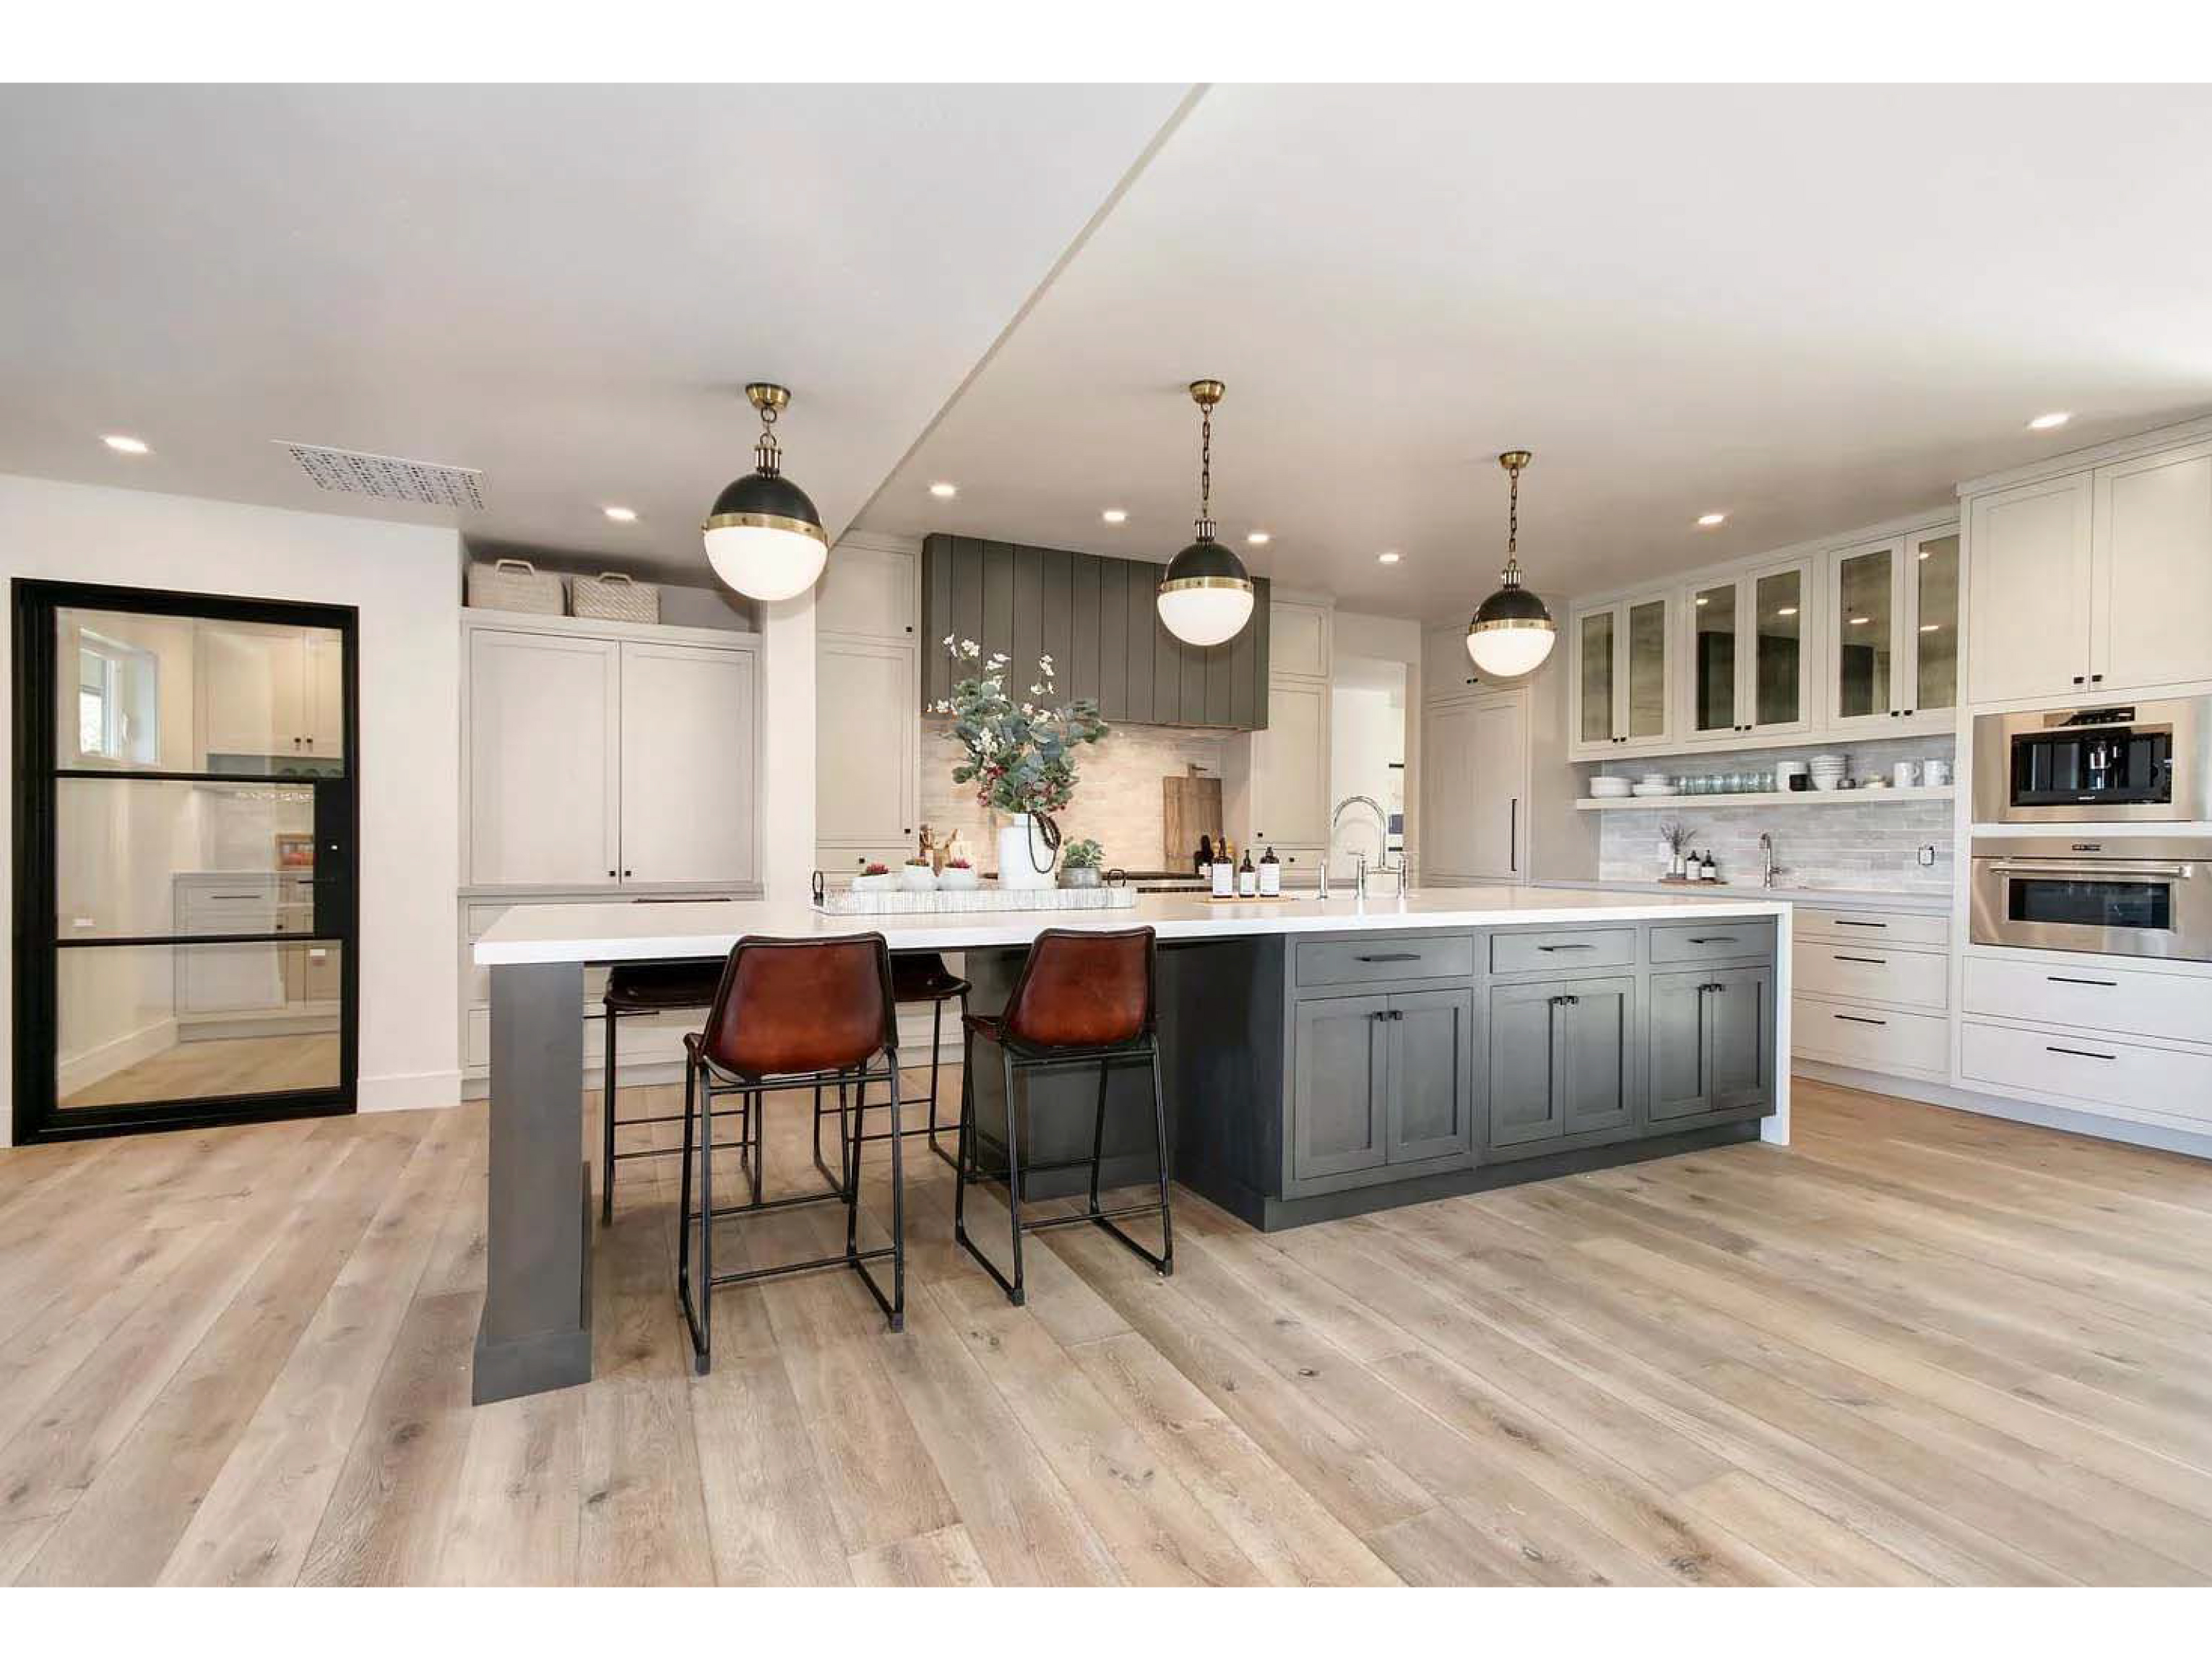 Island bar with grey cabinets and white countertop